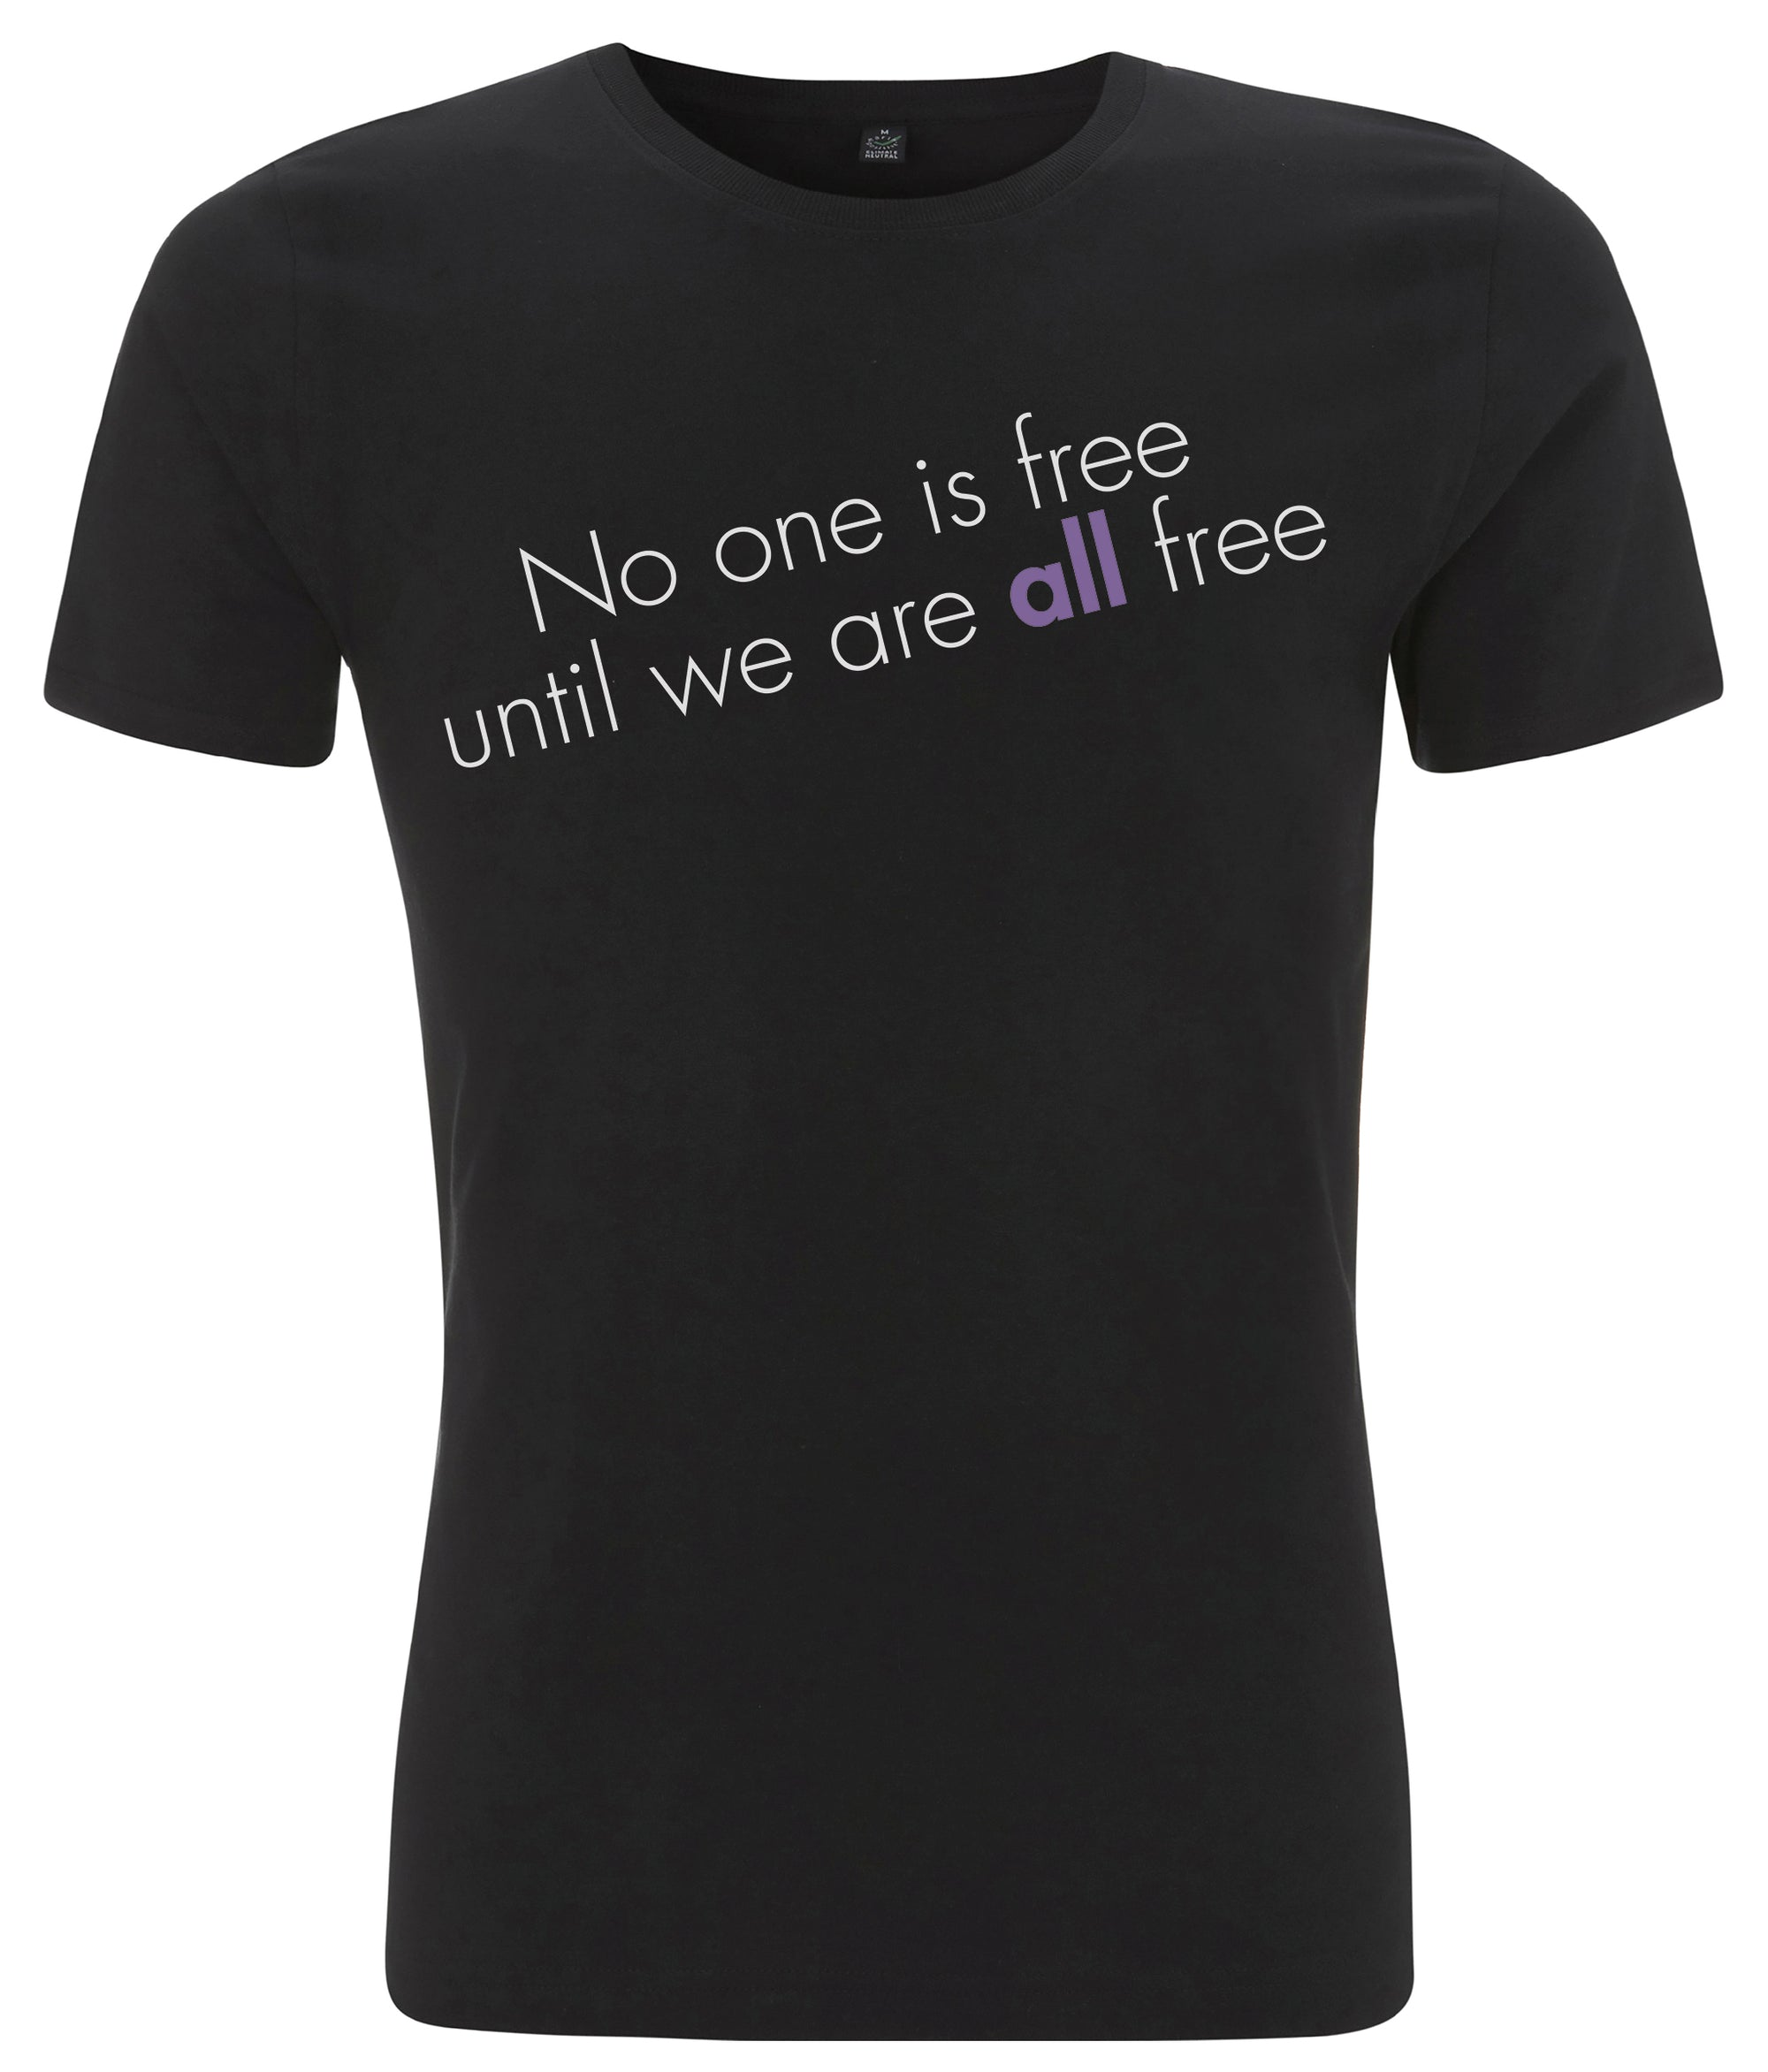 No One Is Free Until We Are All Free Organic Mens Feminist T Shirt Black